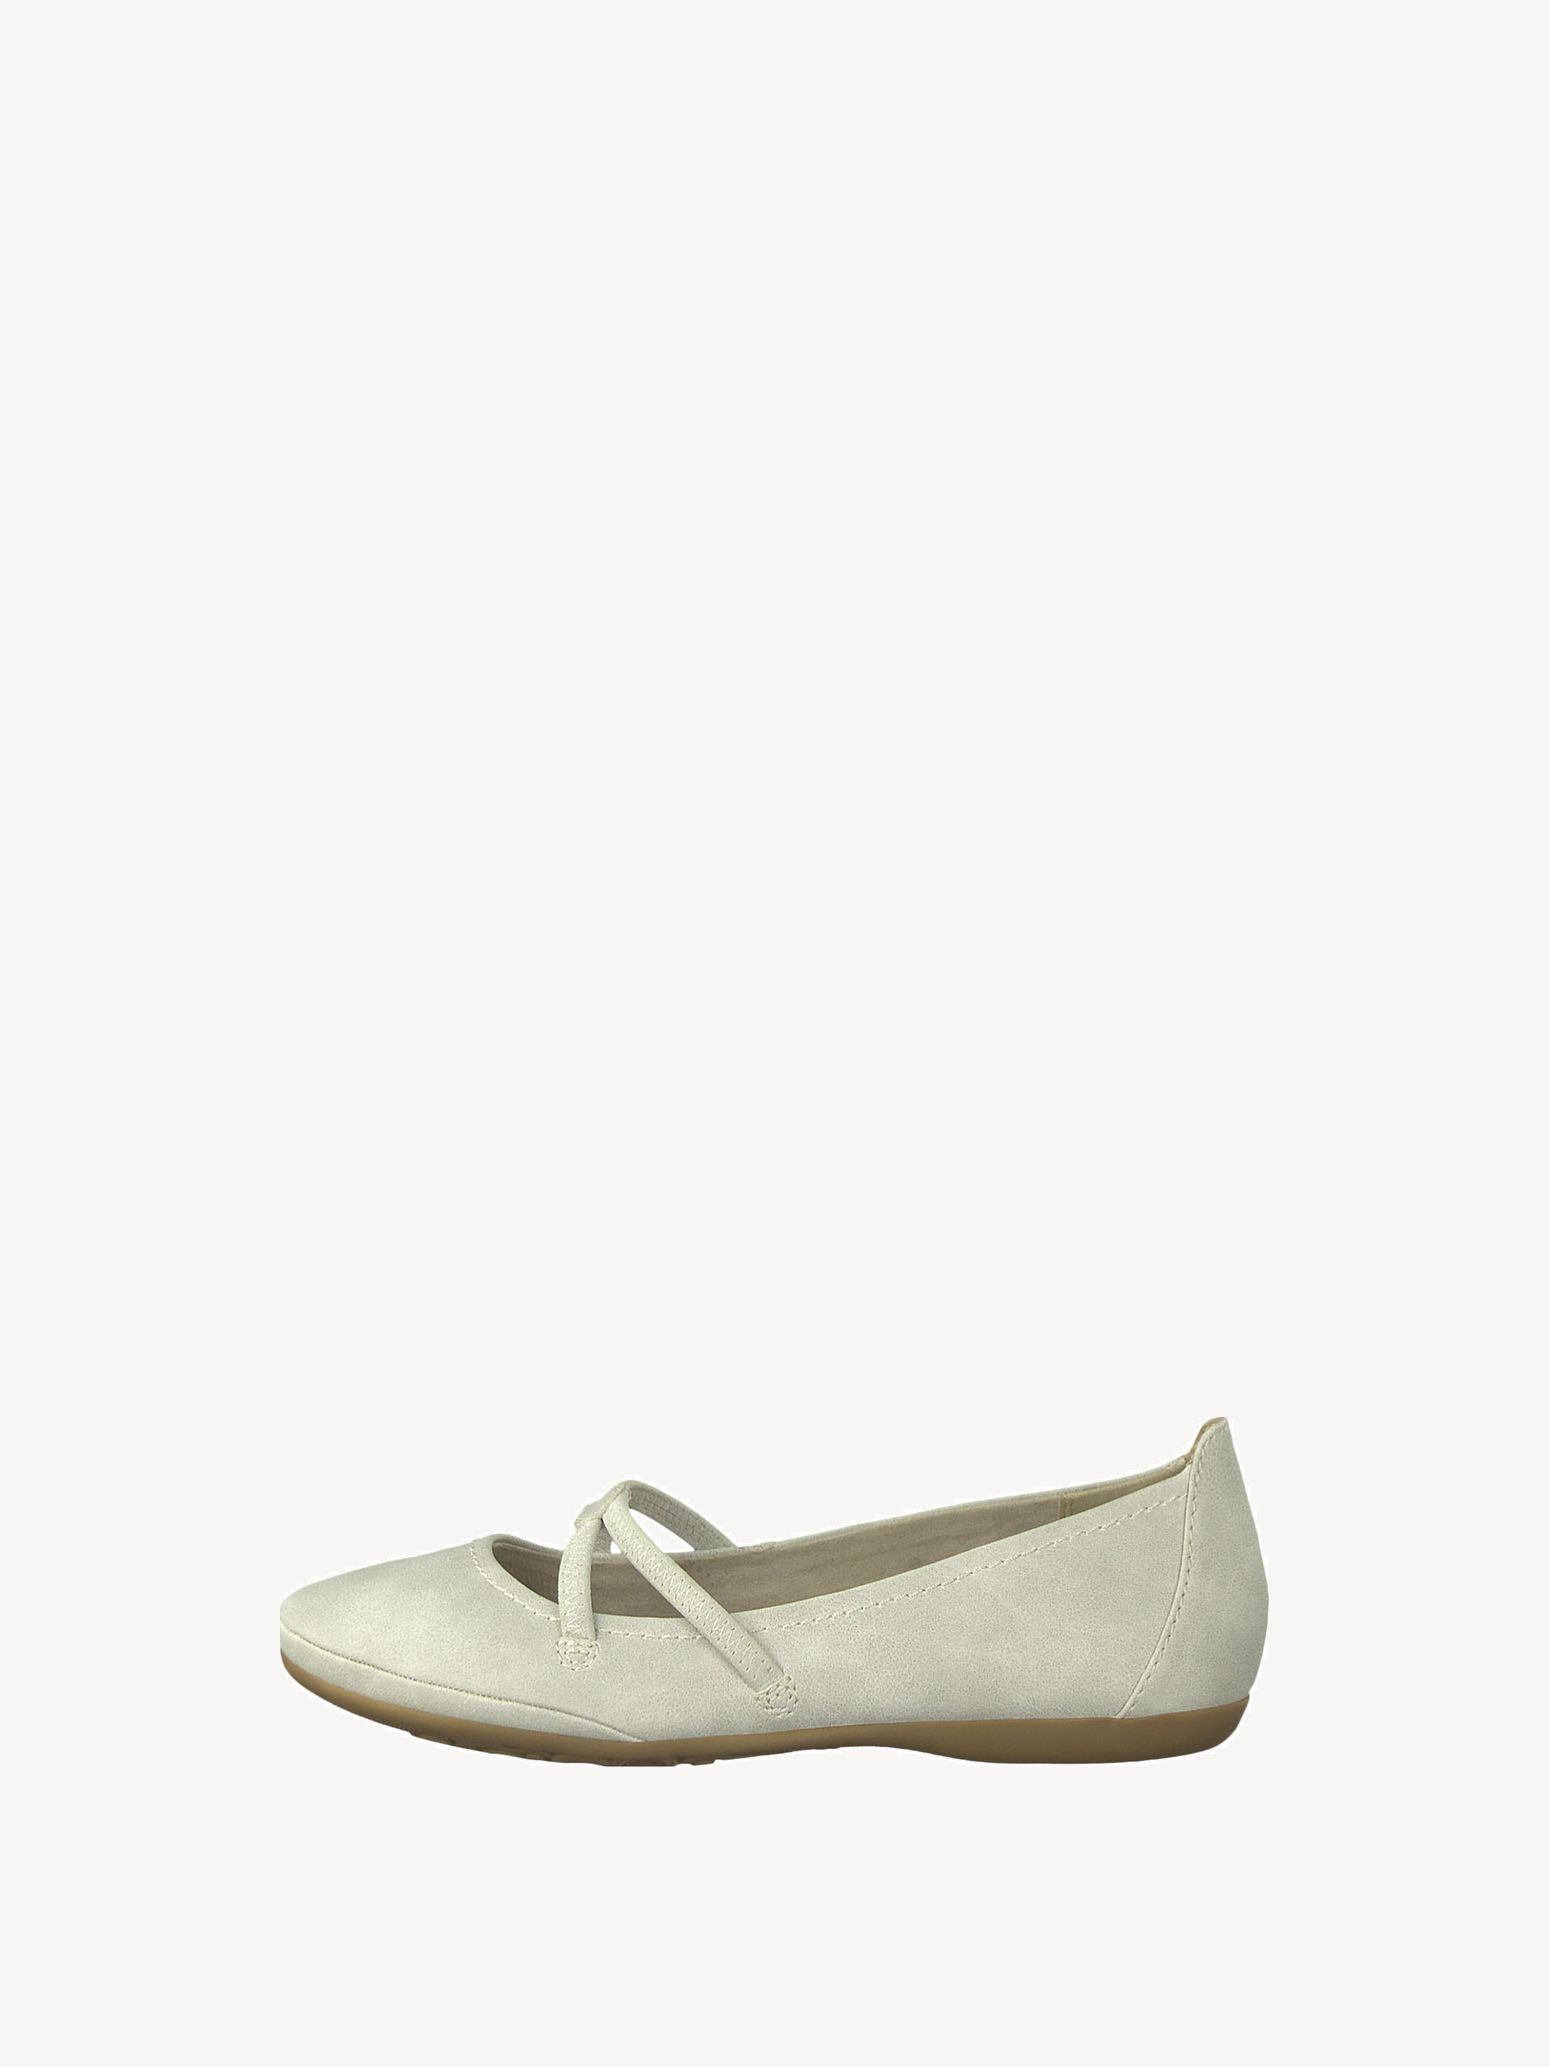 TAMARIS Ballerina Shoes beige